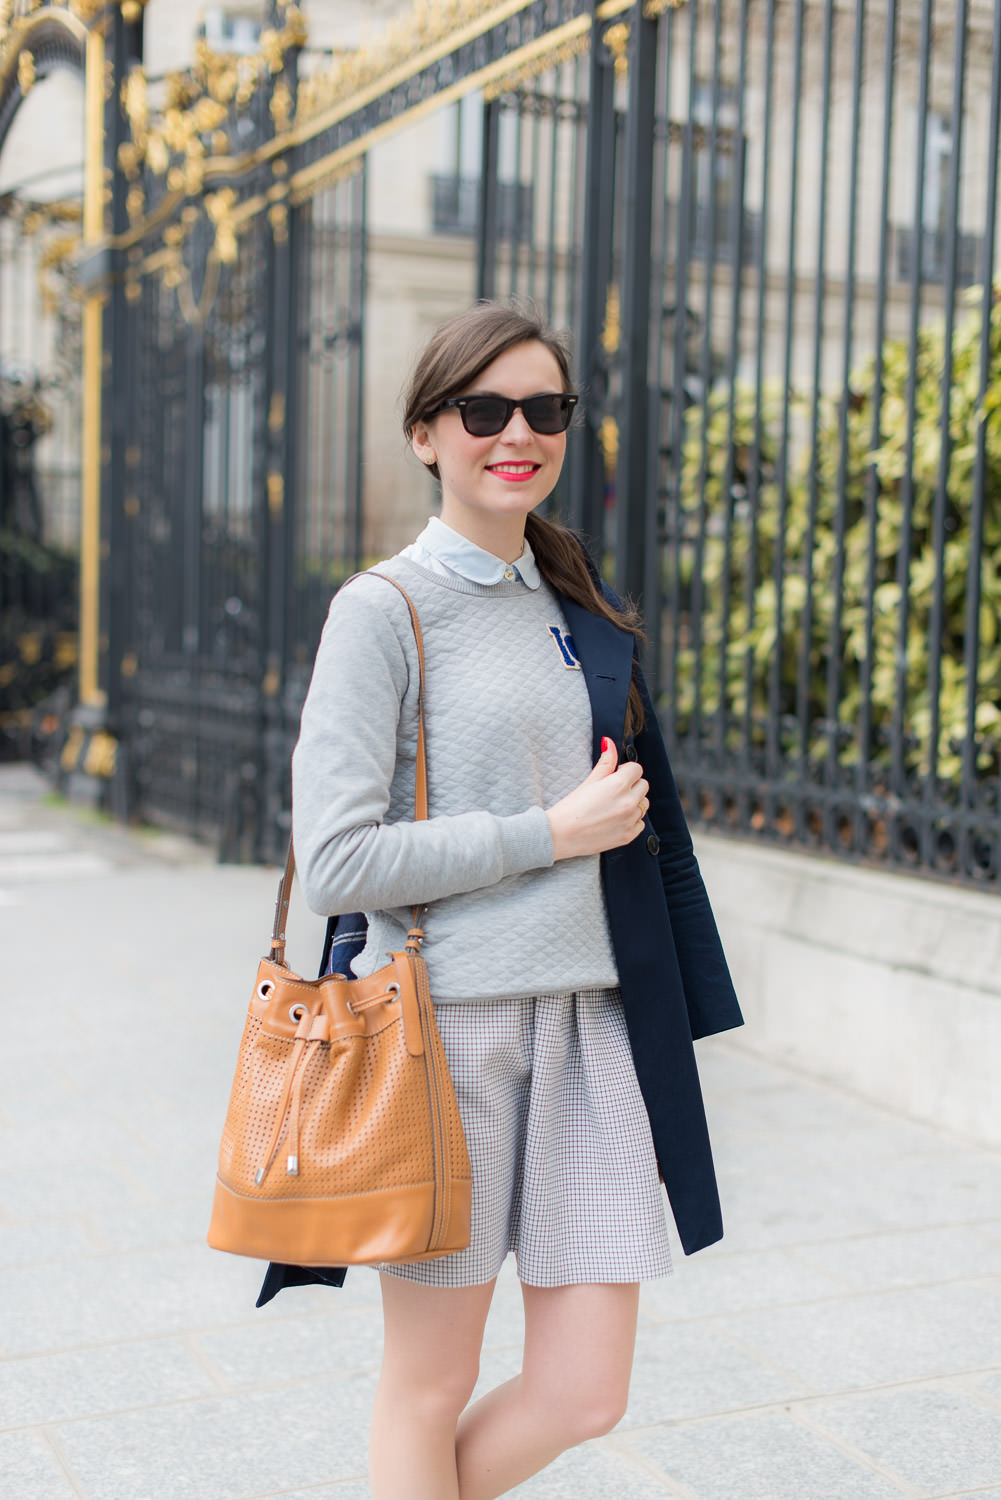 Blog-mode-Mode-And-The-City-looks-collaboration-clarks-orla-kiely (8 sur 11)